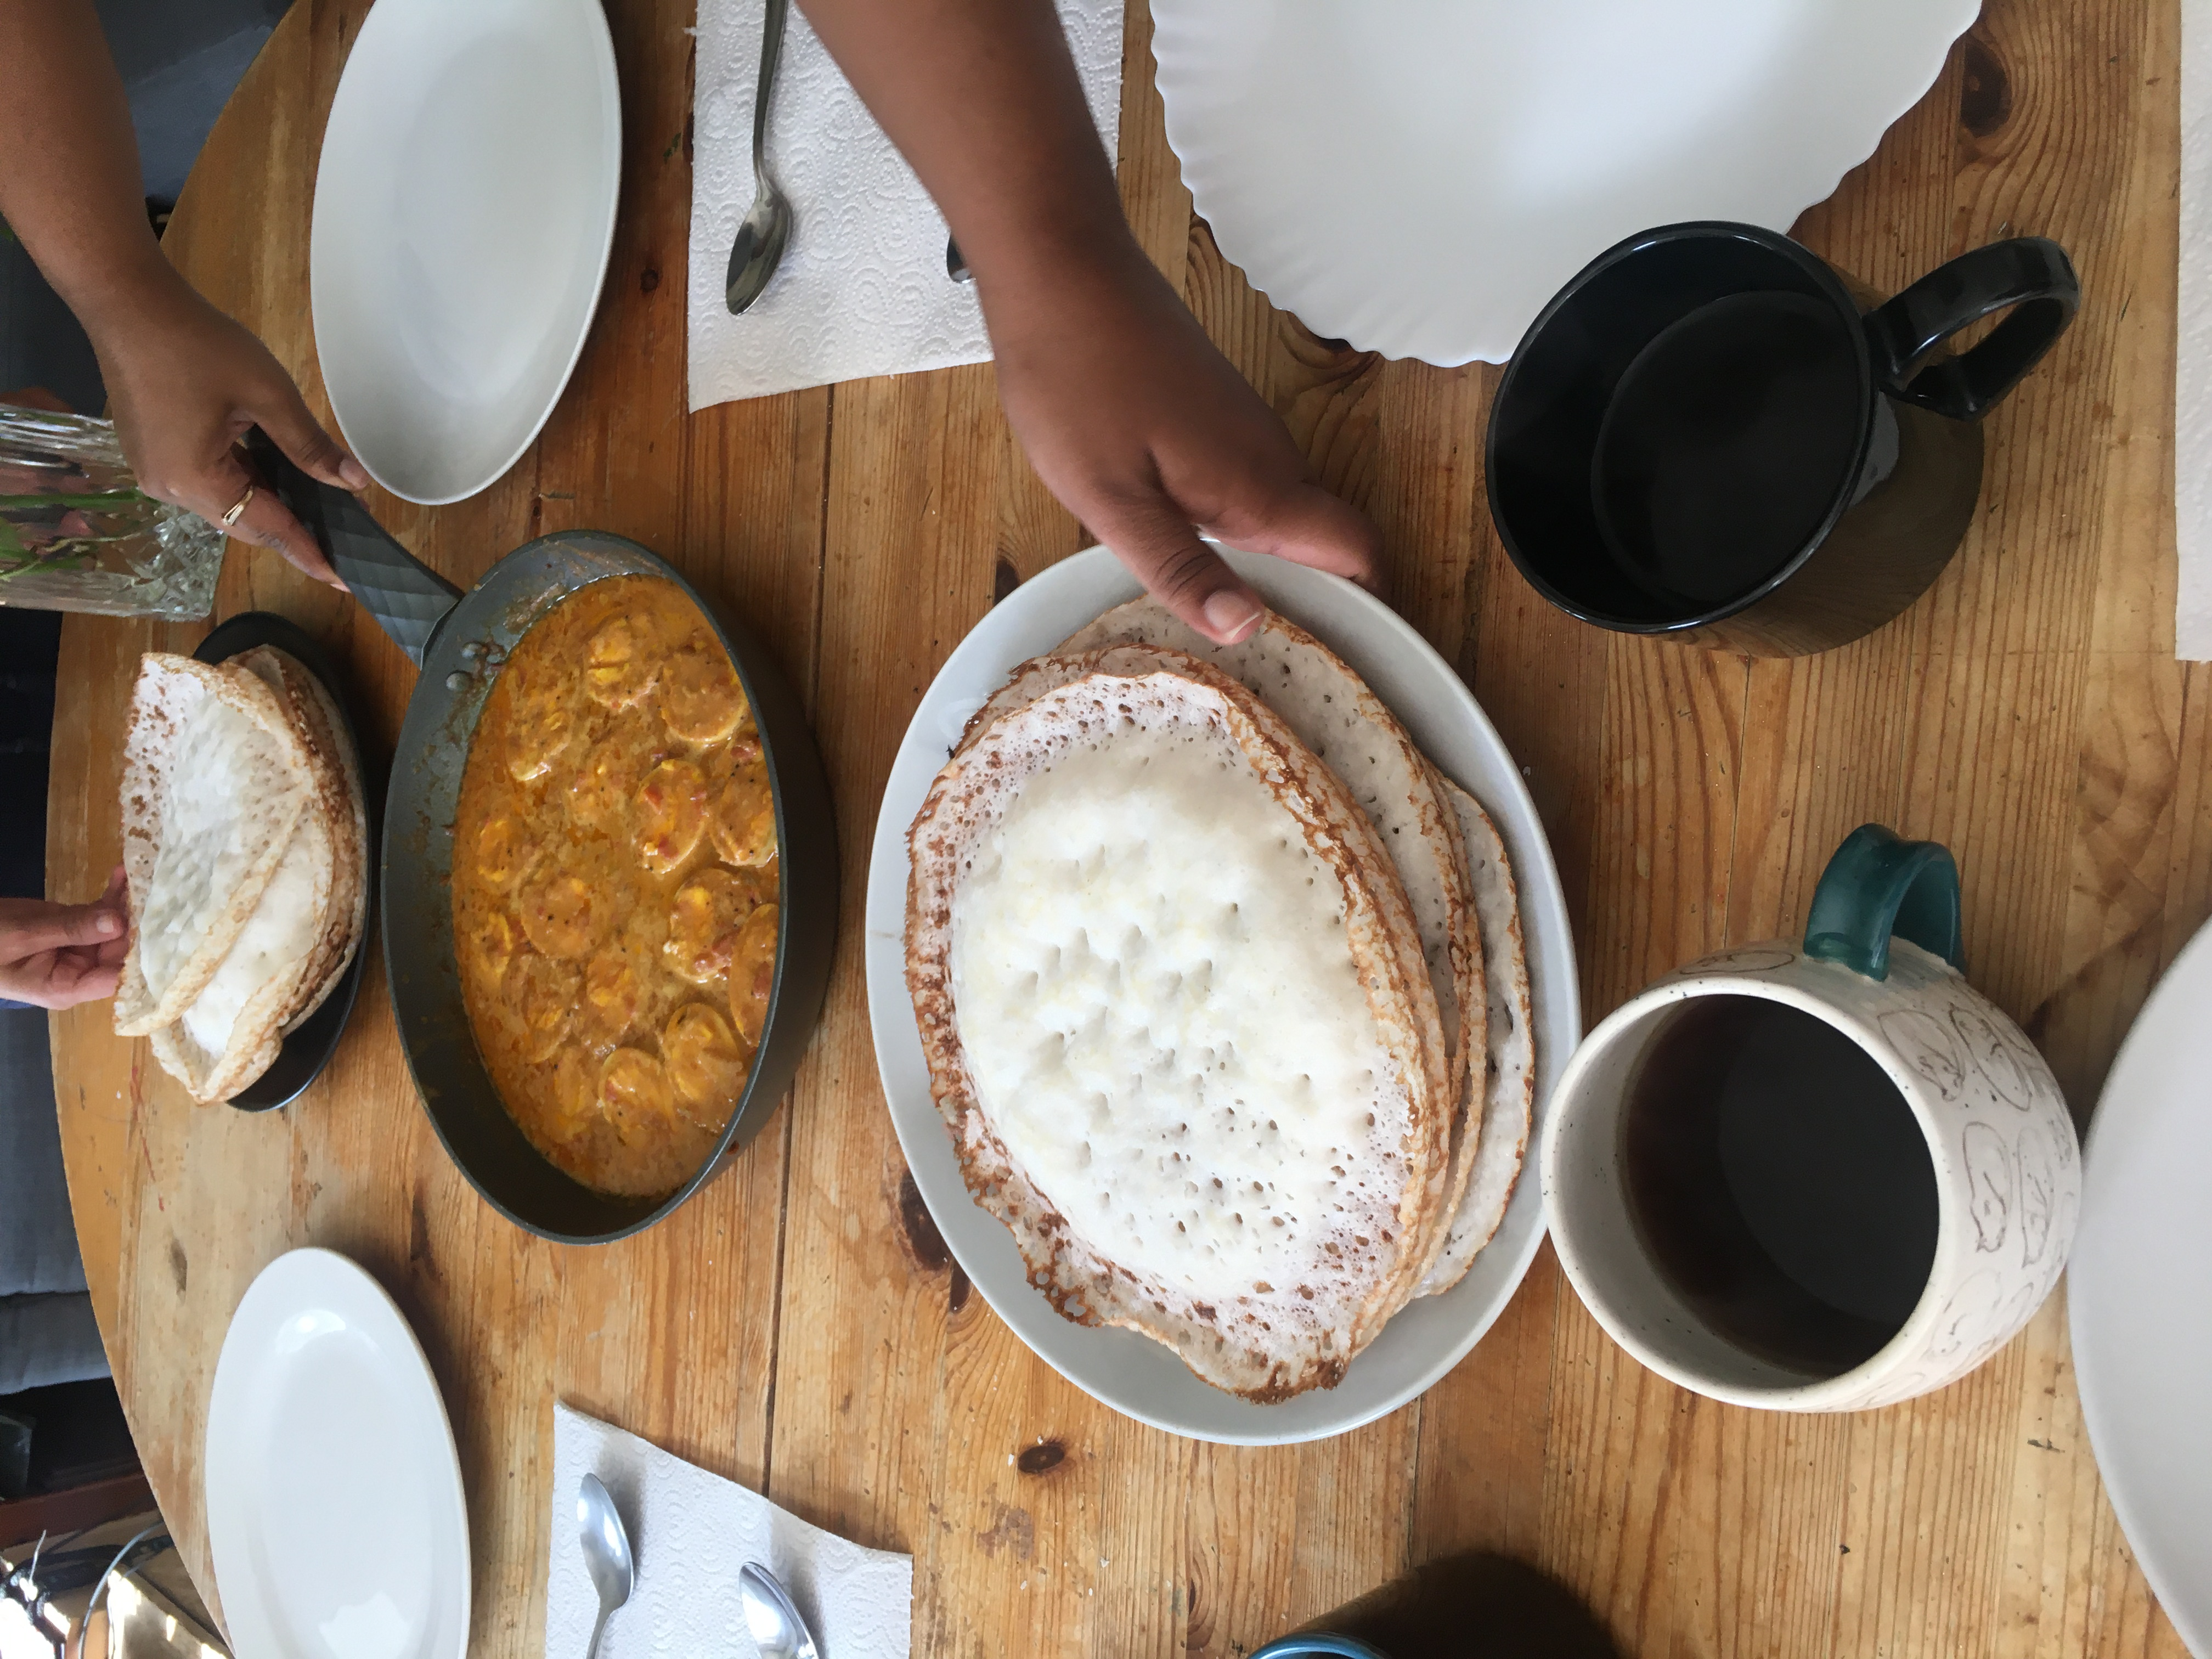 Egg korma and appam - a rice and coconut pancake